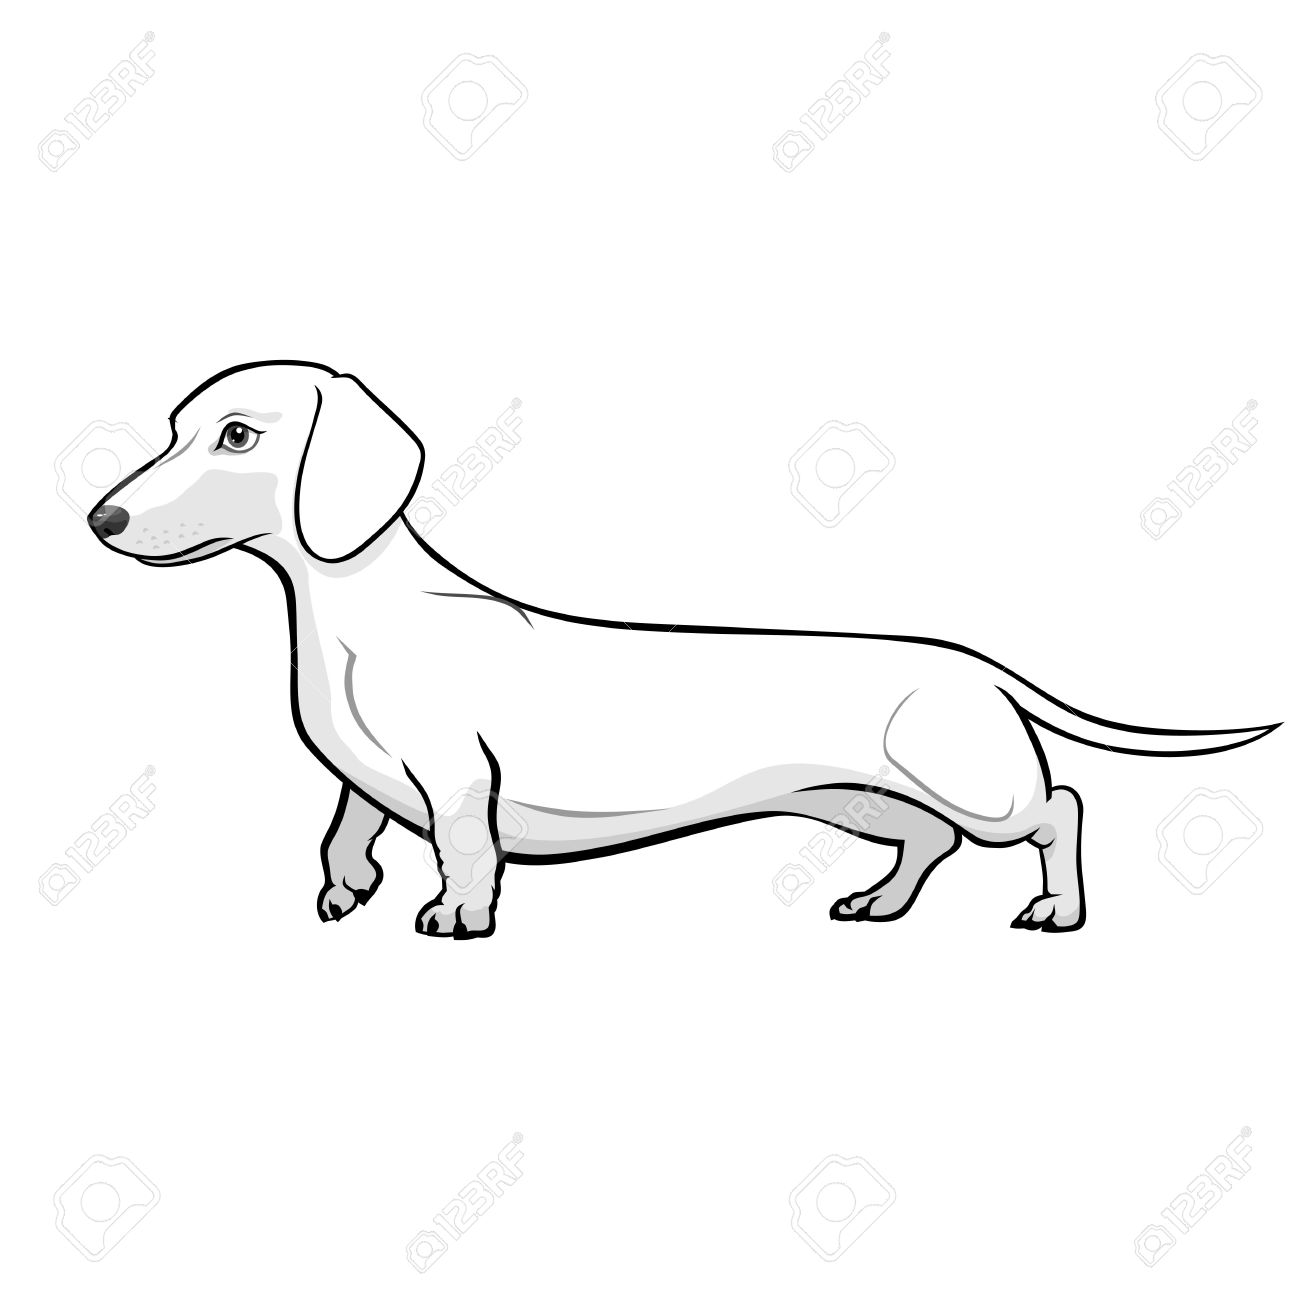 1300x1300 Dachshund Dog Black Amp White Vector Illustration Royalty Free